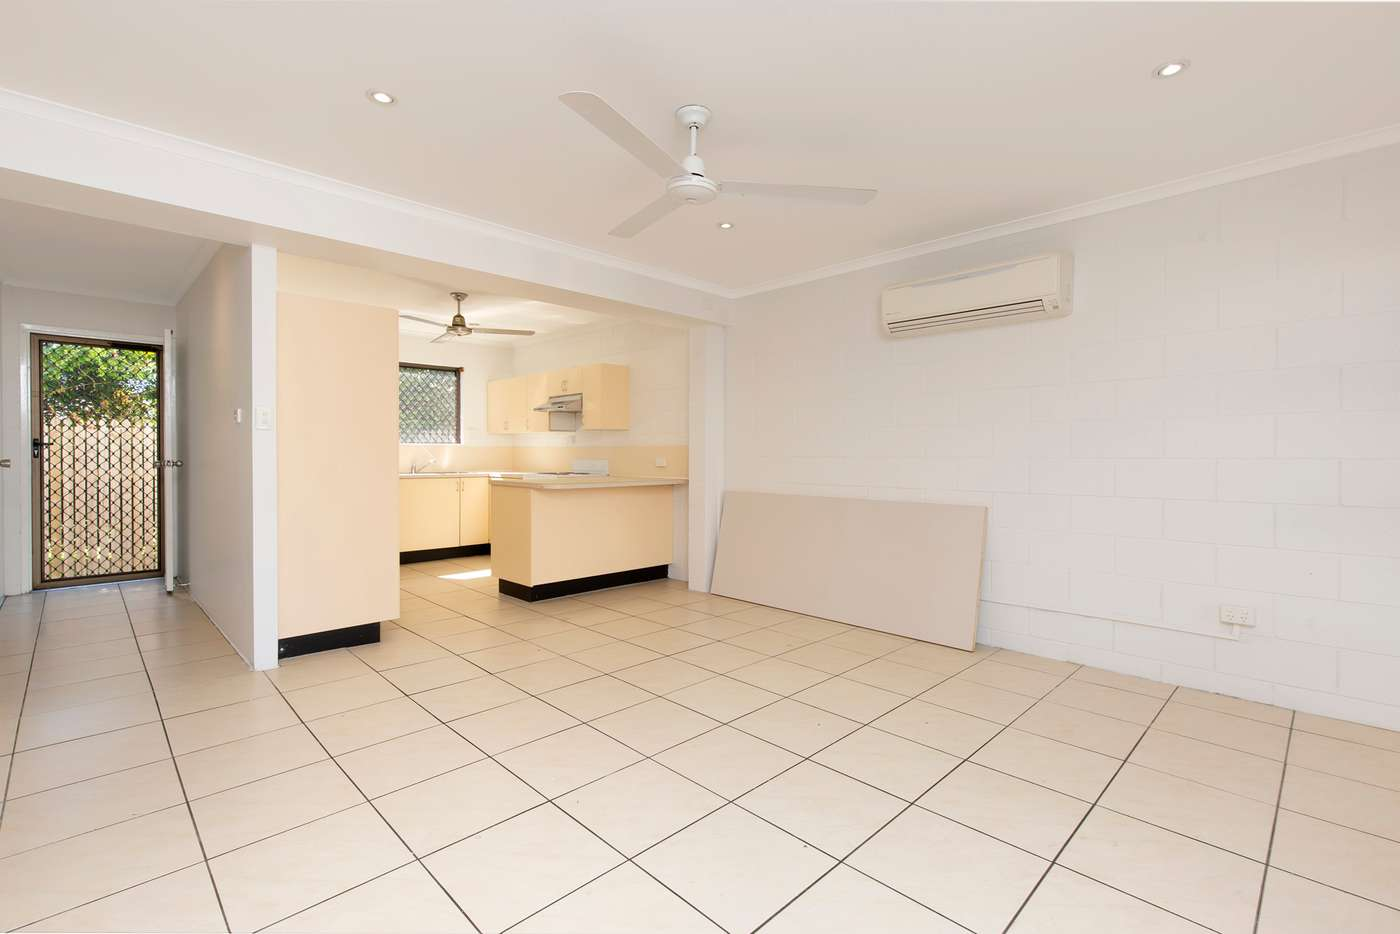 Fifth view of Homely unit listing, 5/47 Warburton Street, North Ward QLD 4810